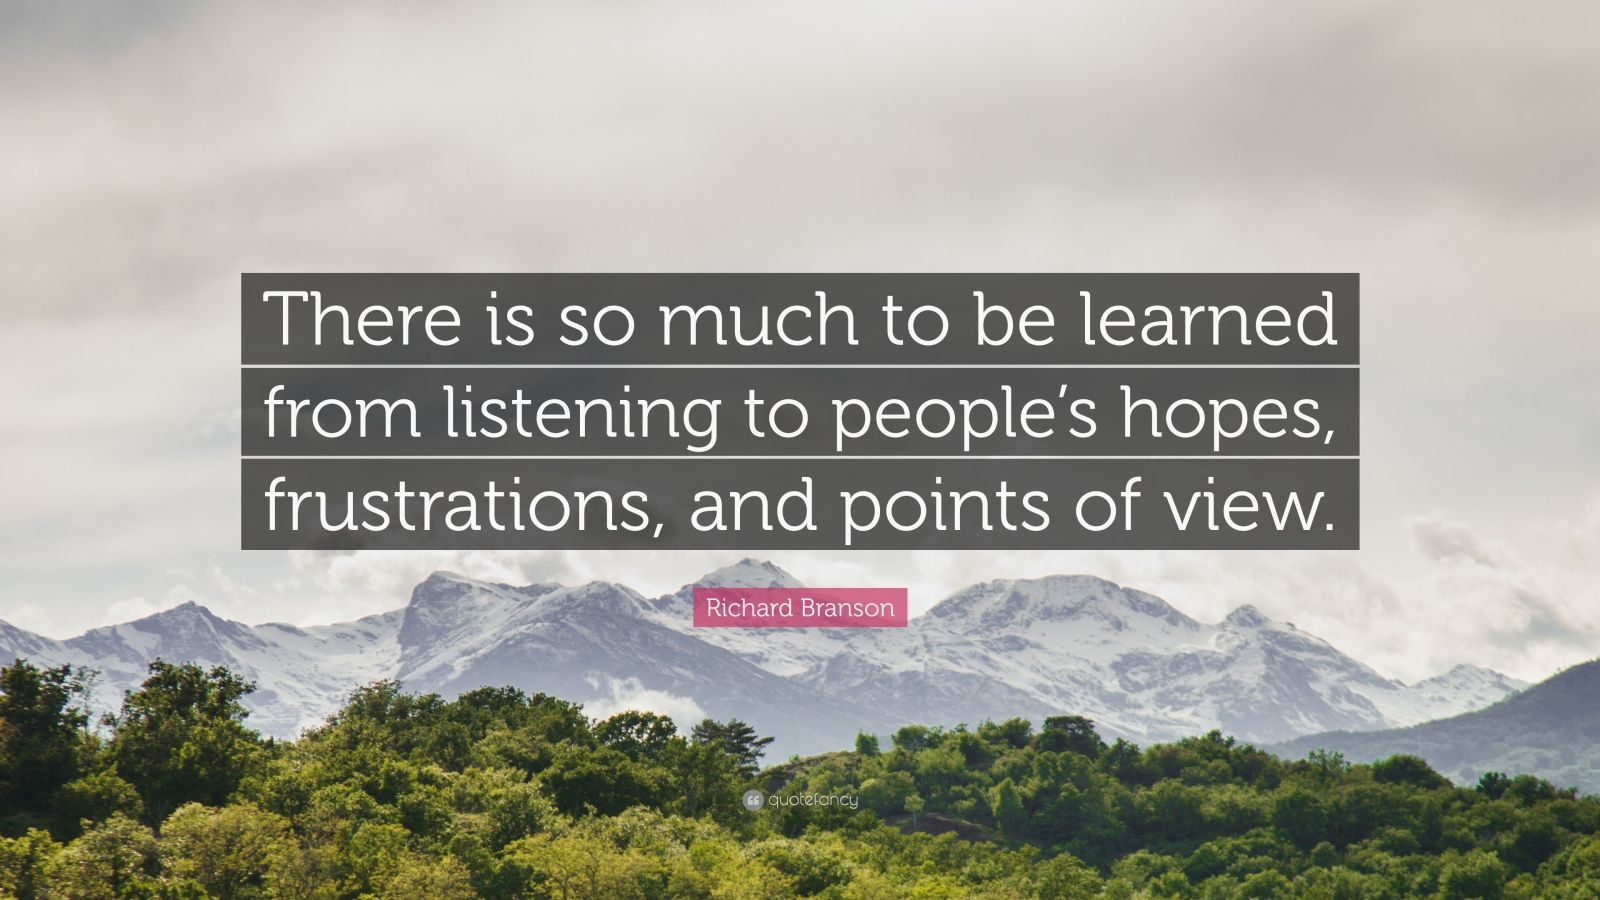 """Richard Branson Quote: """"There is so much to be learned from listening to people's hopes, frustrations, and points of view."""""""